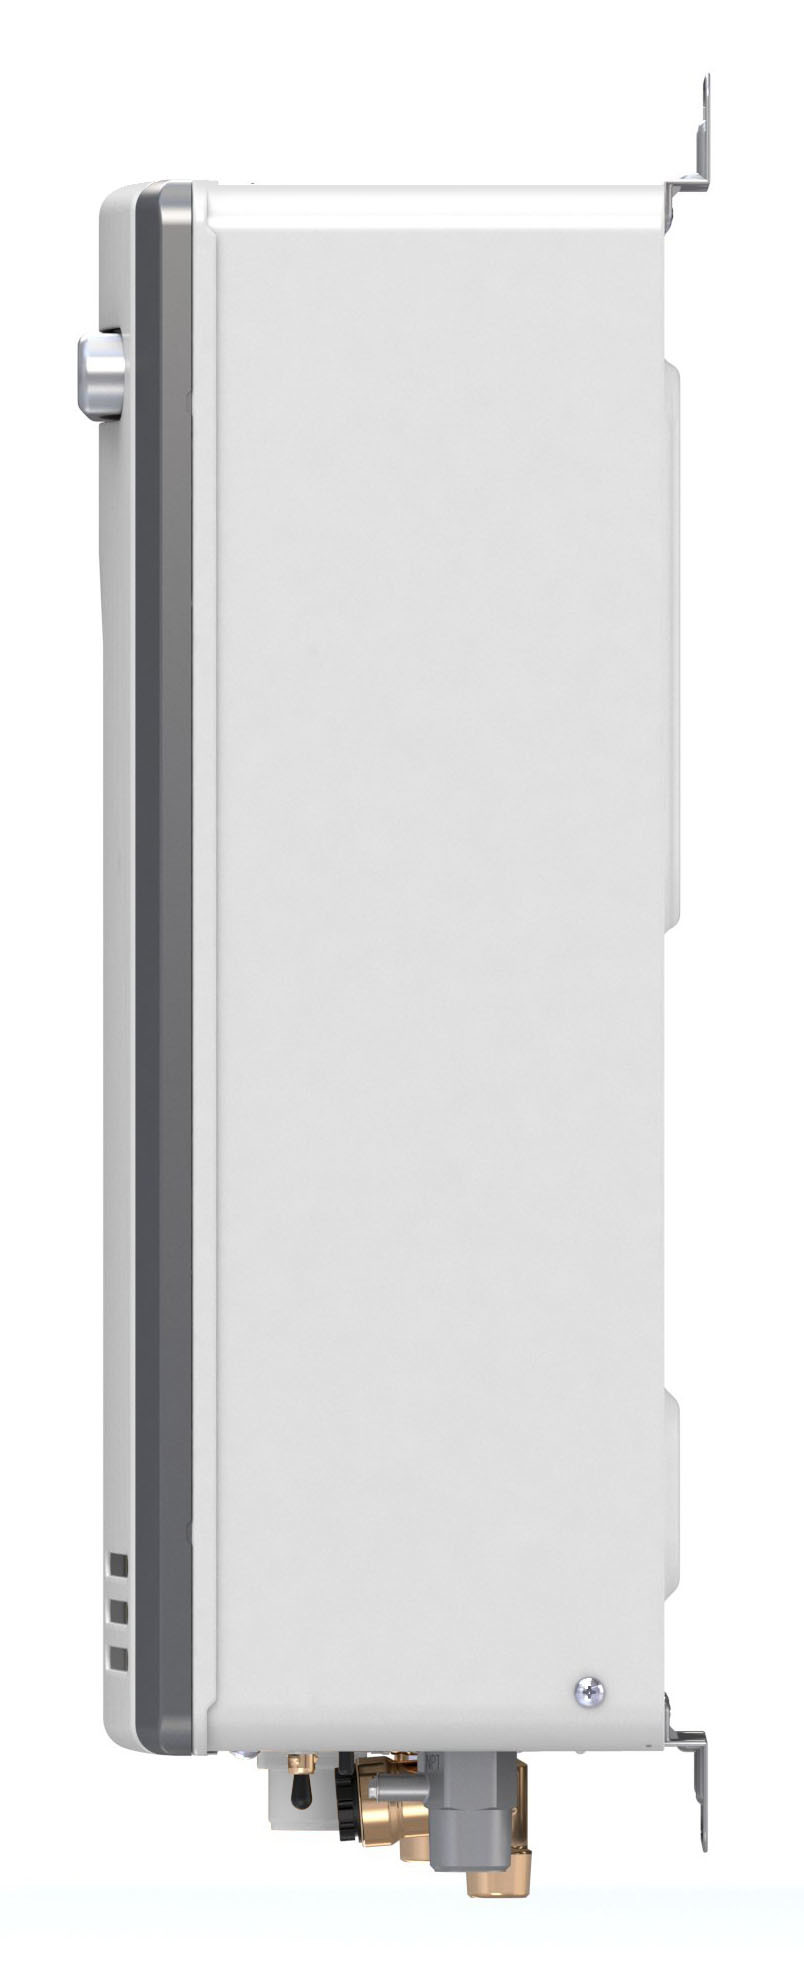 Rinnai V53den Outdoor Whole House Natural Gas Tankless